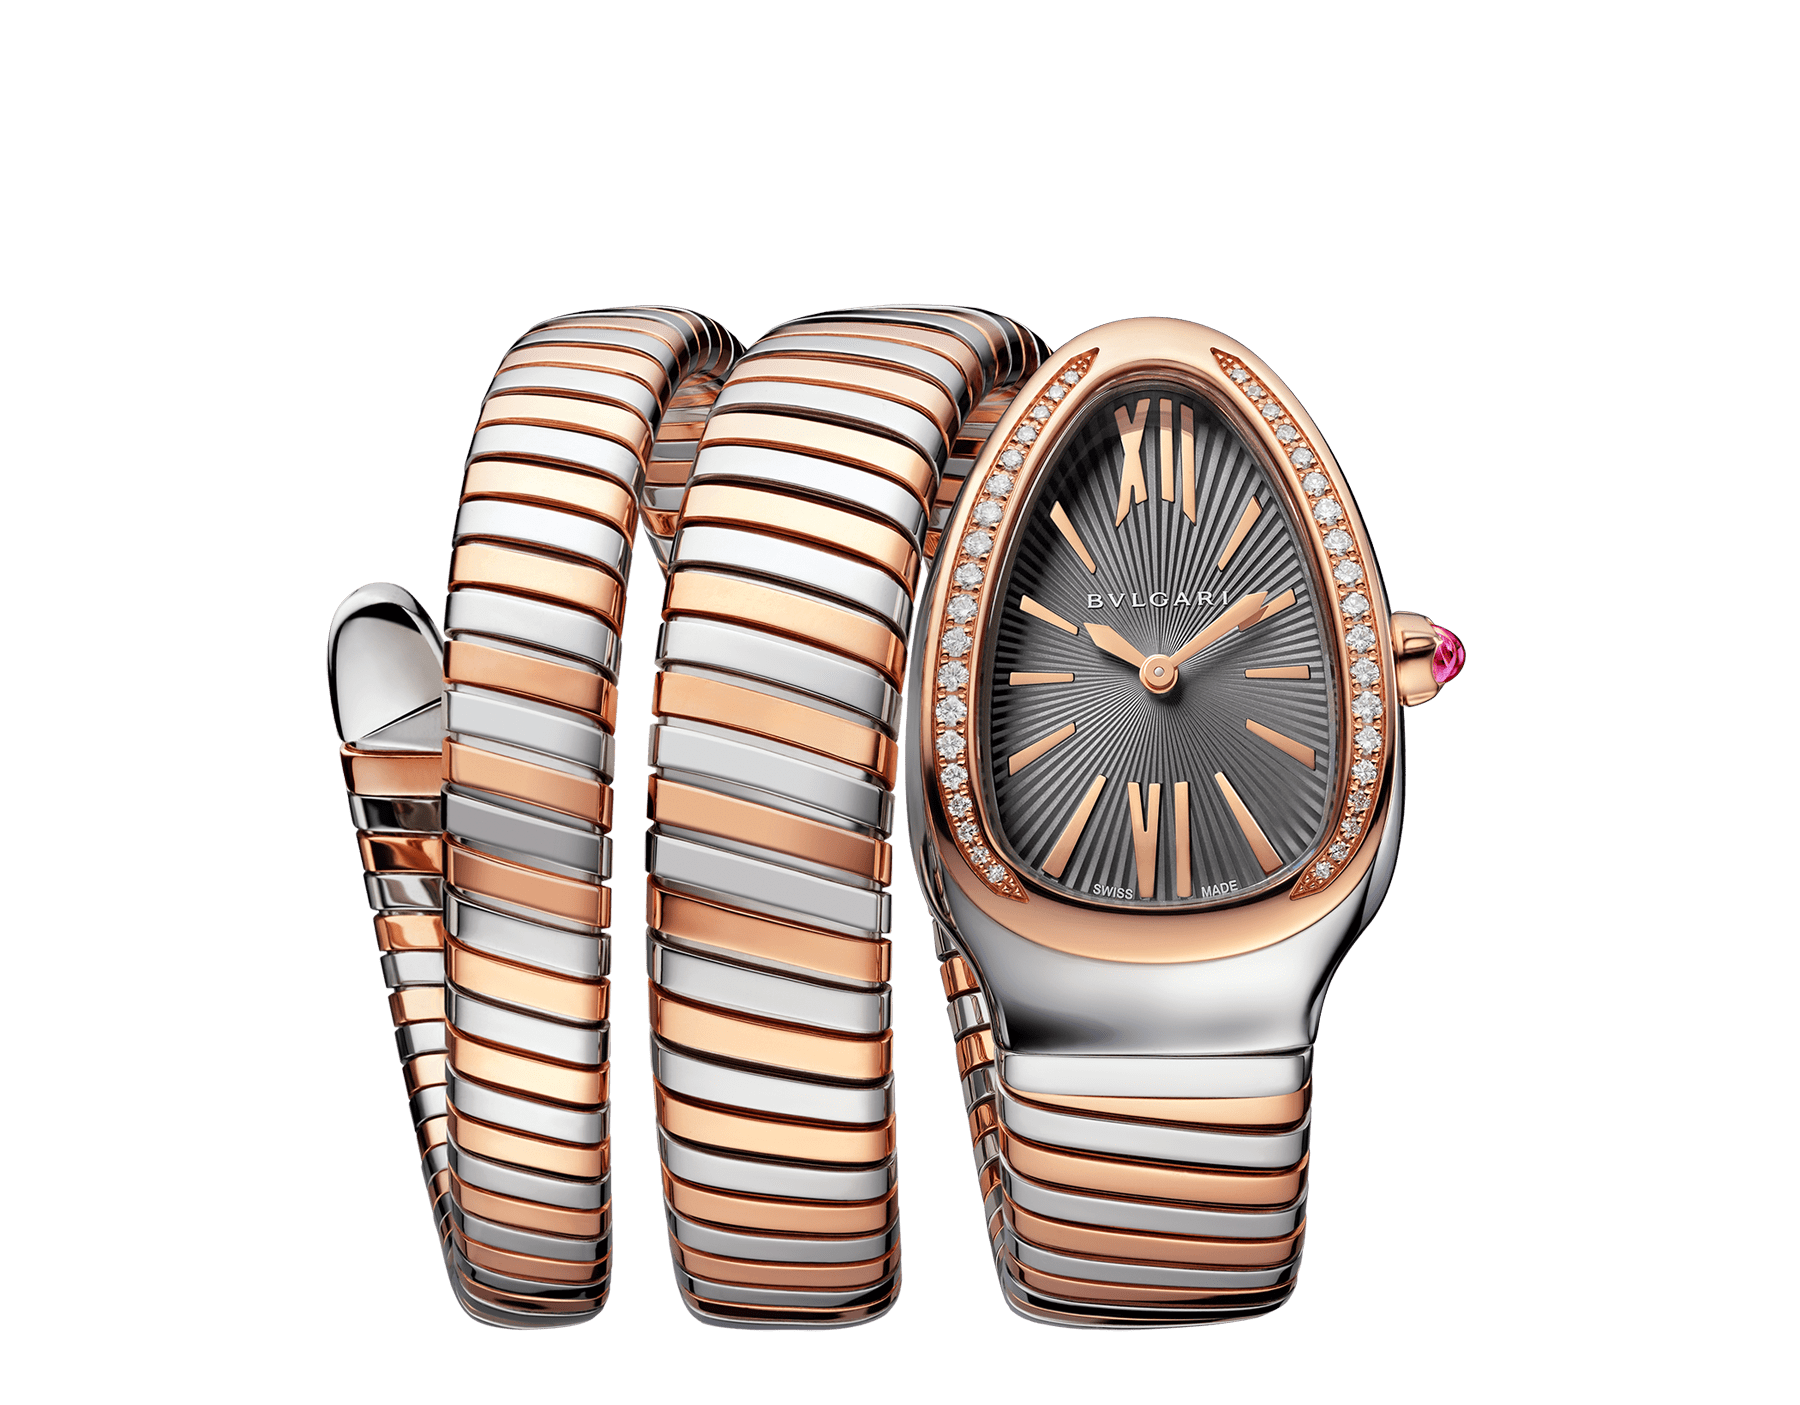 Serpenti Tubogas double spiral watch with stainless steel case, 18 kt rose gold bezel set with brilliant cut diamonds, grey lacquered dial, 18 kt rose gold and stainless steel bracelet. 102680 image 1